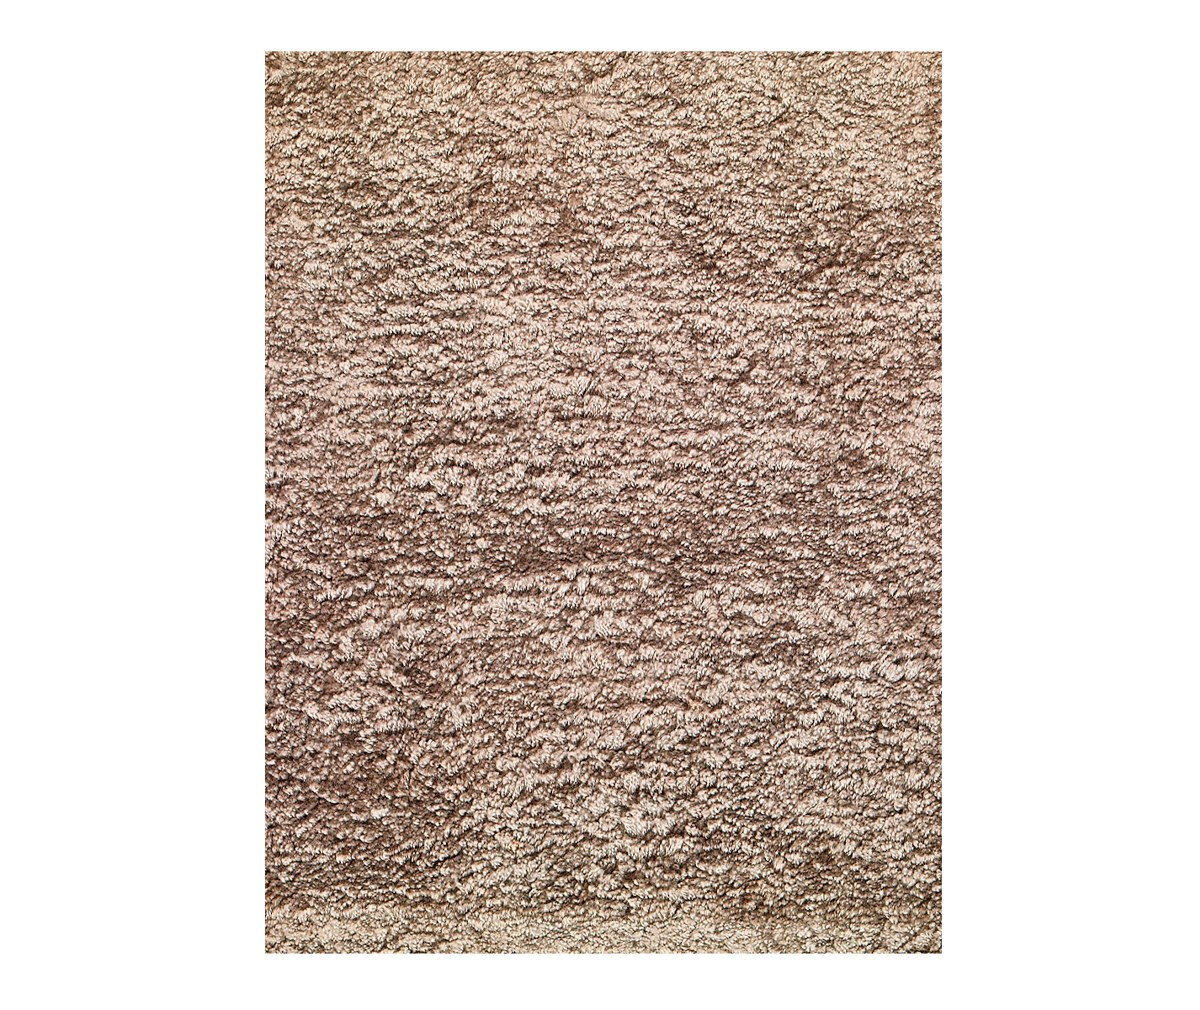 Roots Living Pile Viscose vaip 200 x 300 cm, hall